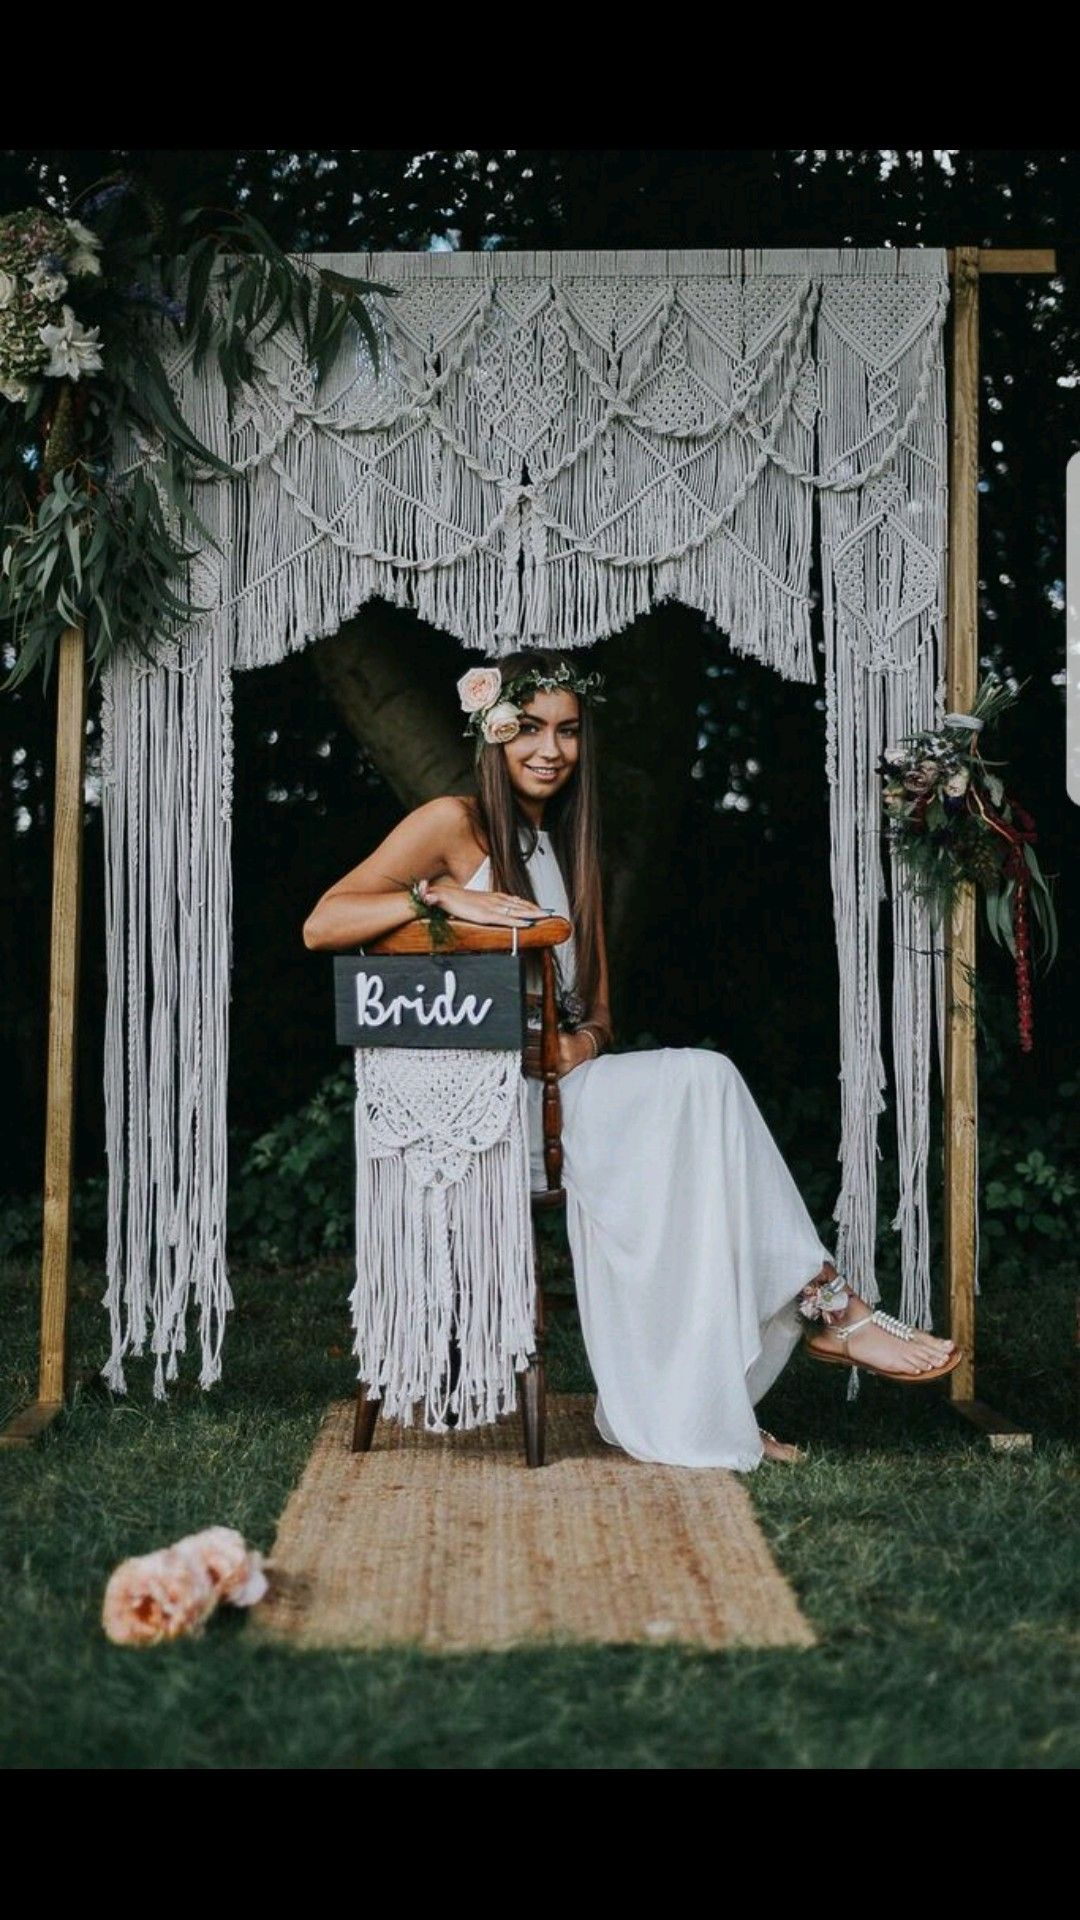 Macrame wedding arch made by Little White Attic little white attic